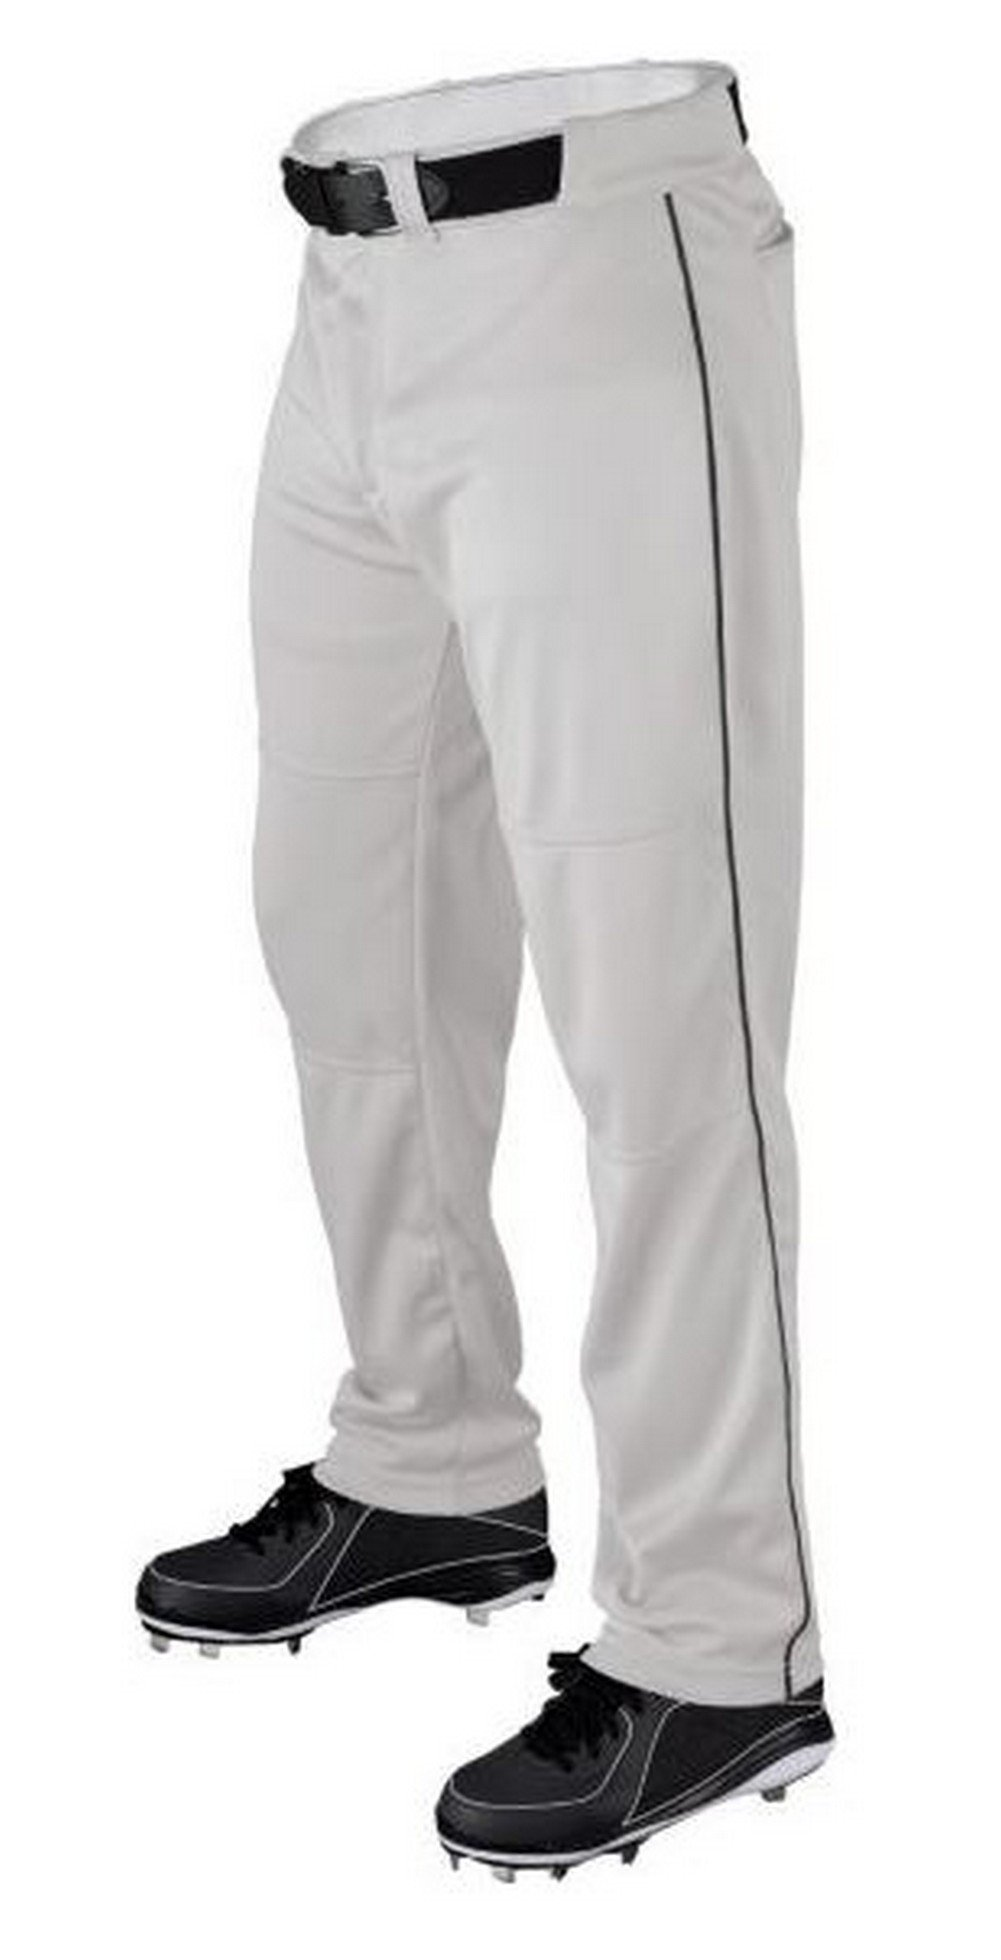 Wilson Youth Classic Relaxed Fit Piped Baseball Pant, White/Black, Small by Wilson